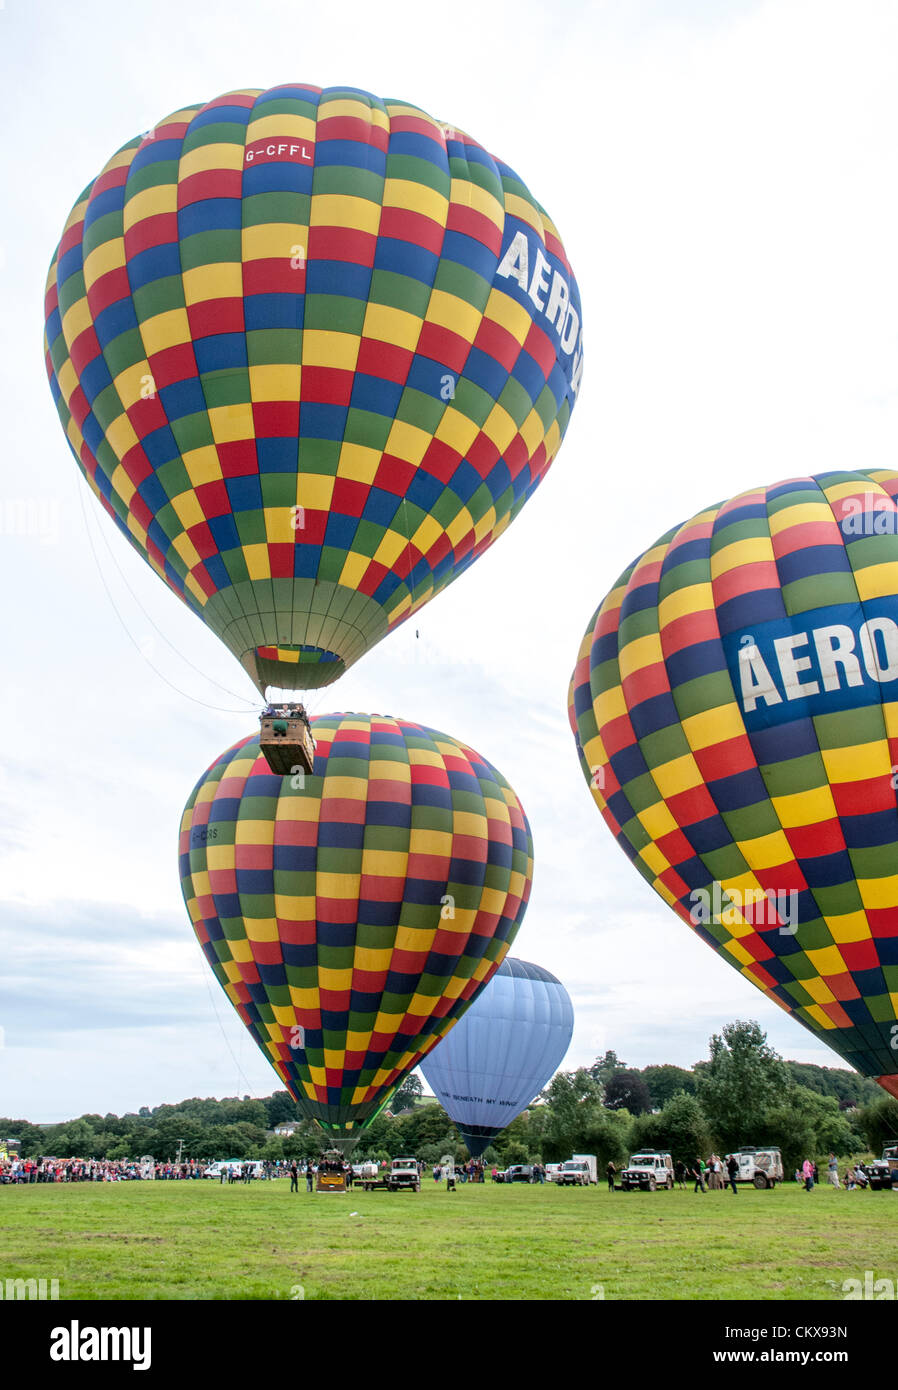 26th Aug 2012. The the Colin Hodges G-CFFL Lindstrand LBL-317A Aerosaurus balloon takes off between the G-CCRS - Lindstrand Aerosaurus balloon and the G-CDHN Lindstrand LBL-317A Aerosaurus balloon at the Tiverton balloon festival in Tiverton, Devon, UK. Stock Photo